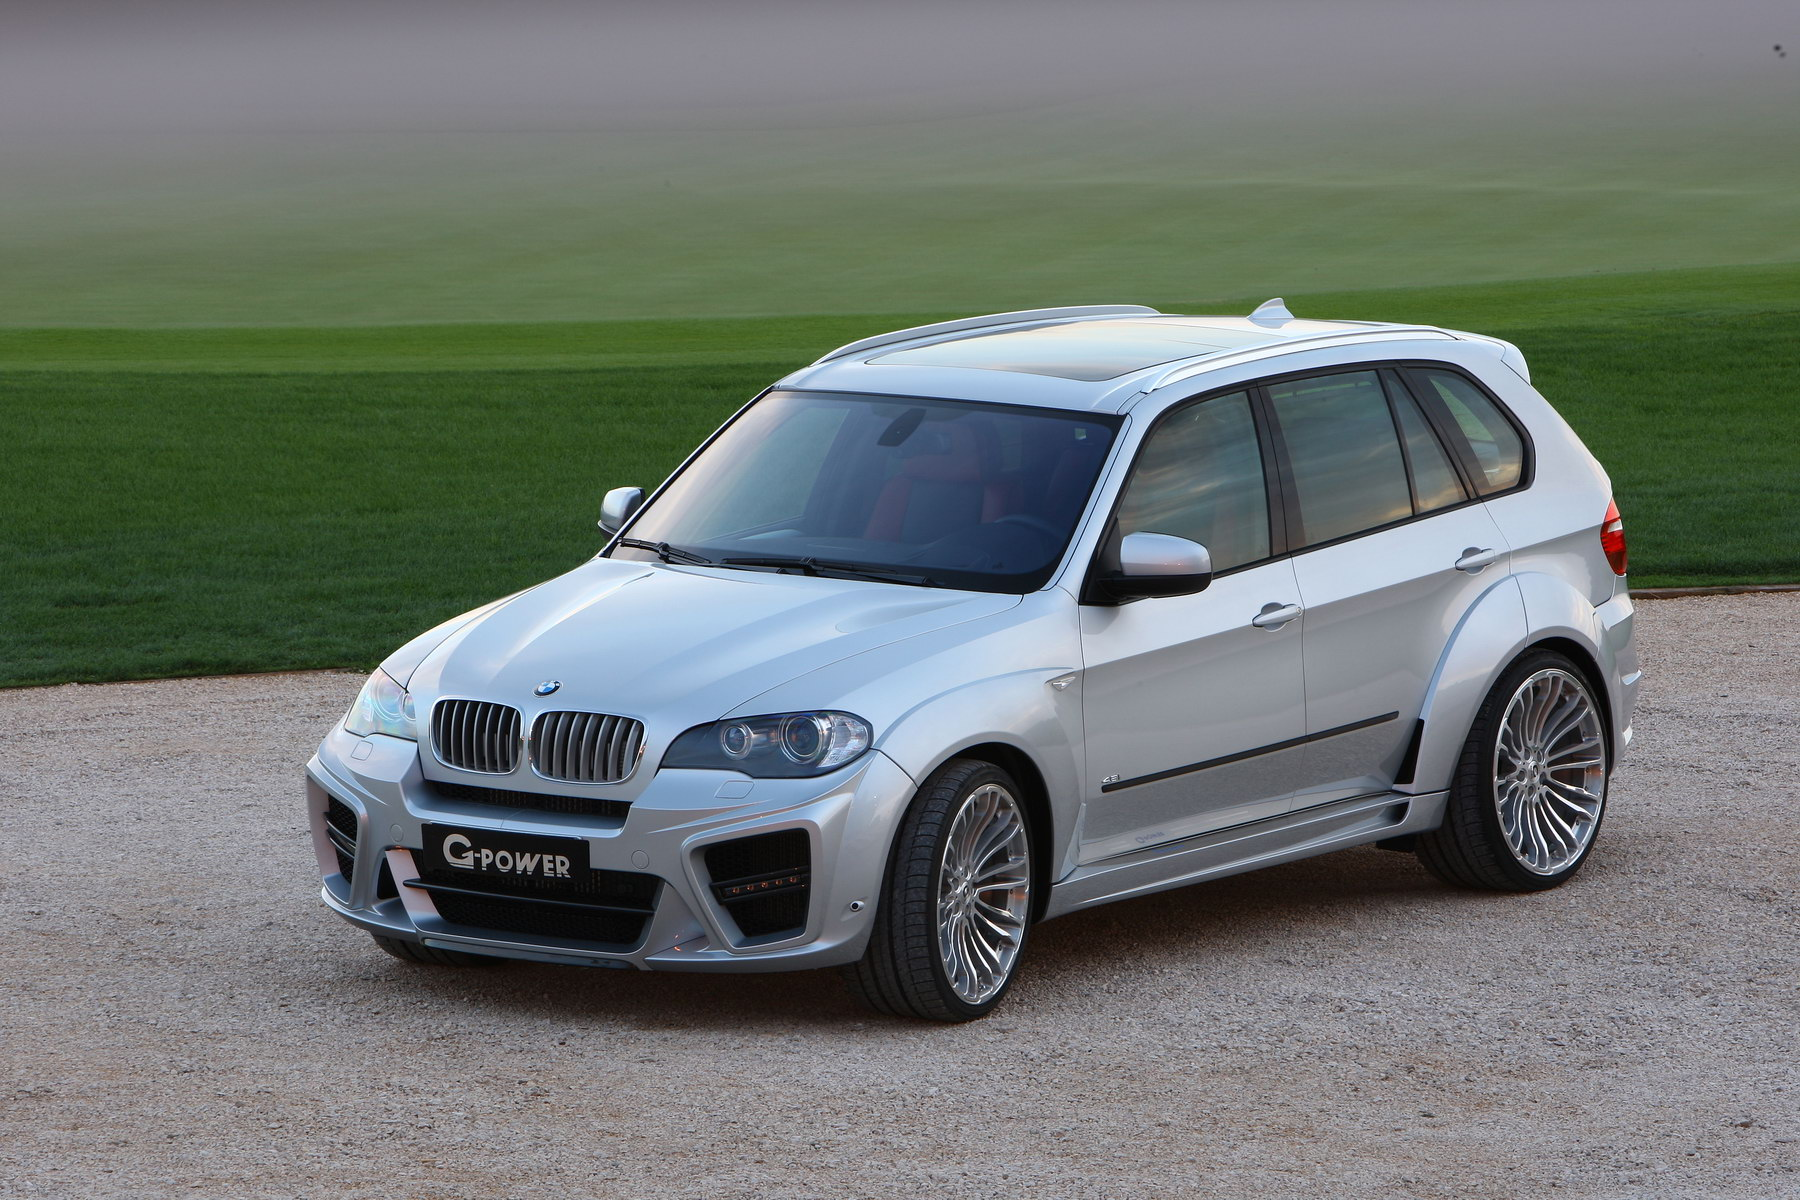 g power bmw x5 typhoon e70 photos photogallery with 10 pics. Black Bedroom Furniture Sets. Home Design Ideas